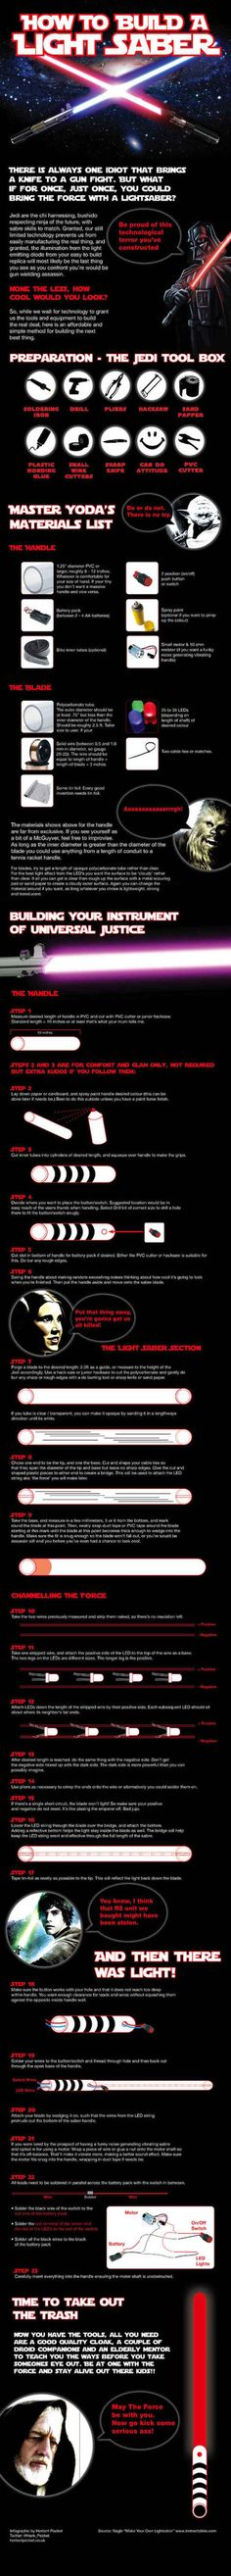 How to build an l.e.d. Lightsaber (Infographic)